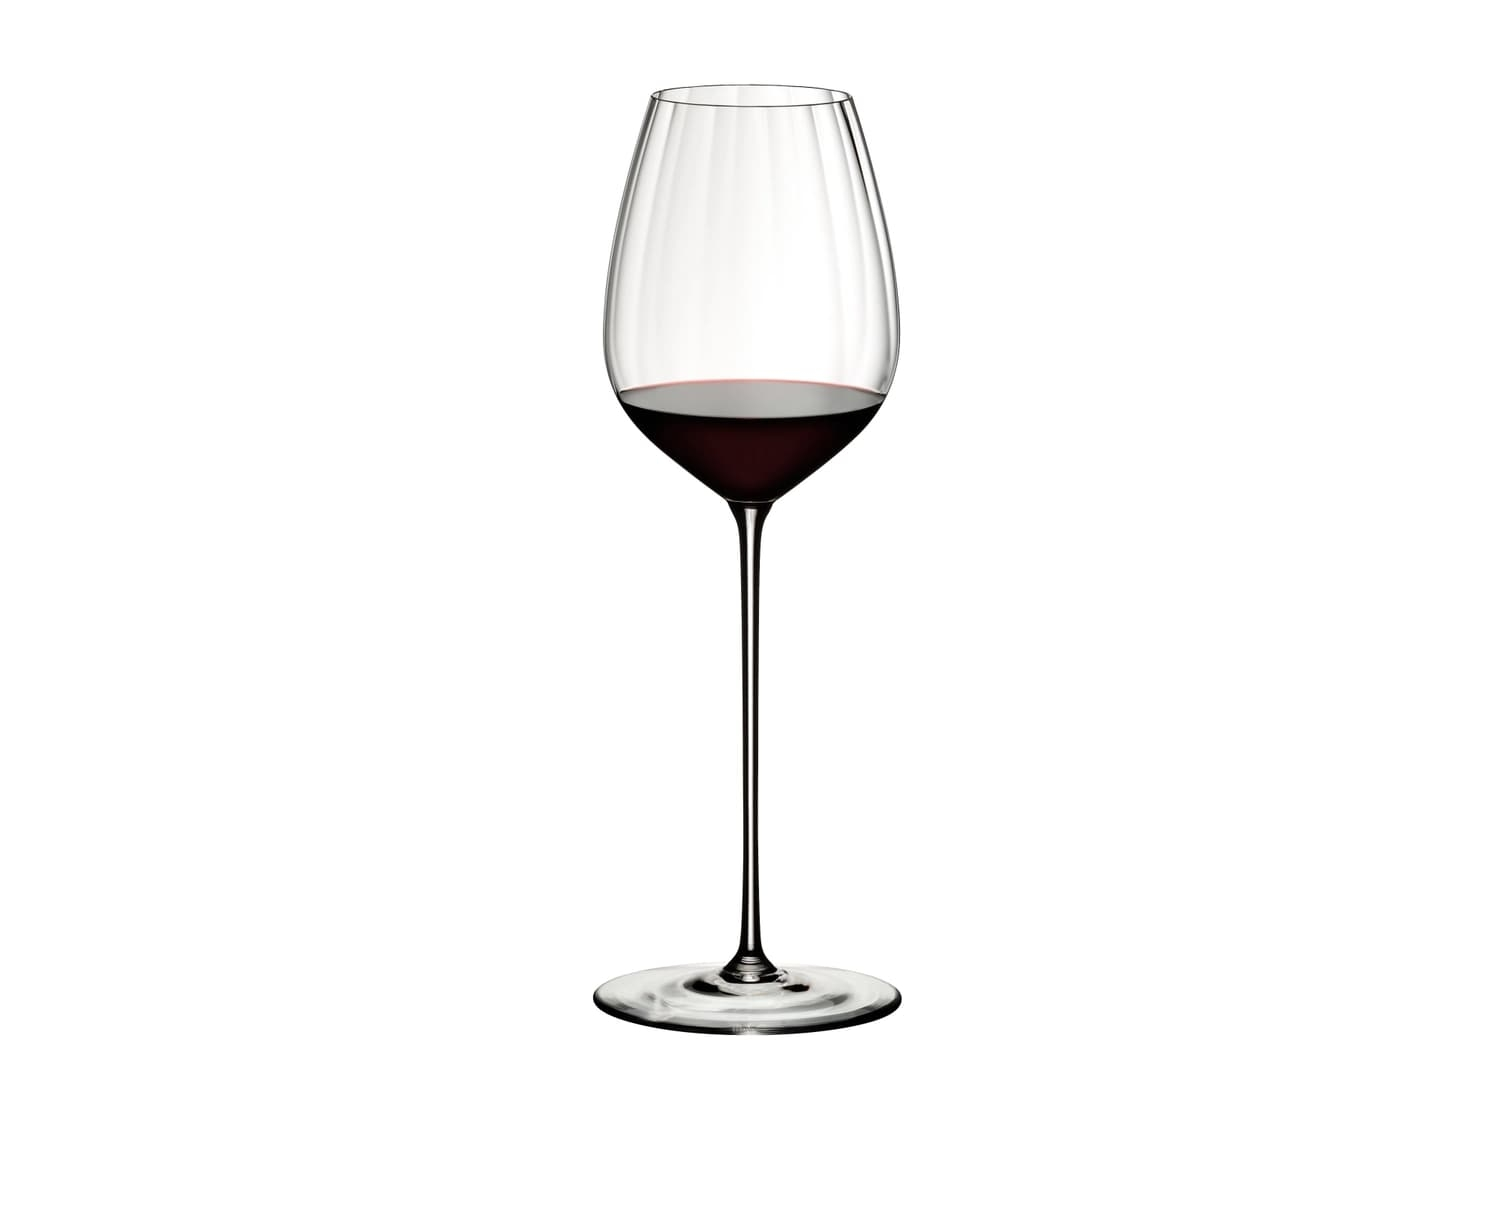 Pahar pentru vin, din cristal High Performance Cabernet Clear, 834 ml, Riedel somproduct.ro